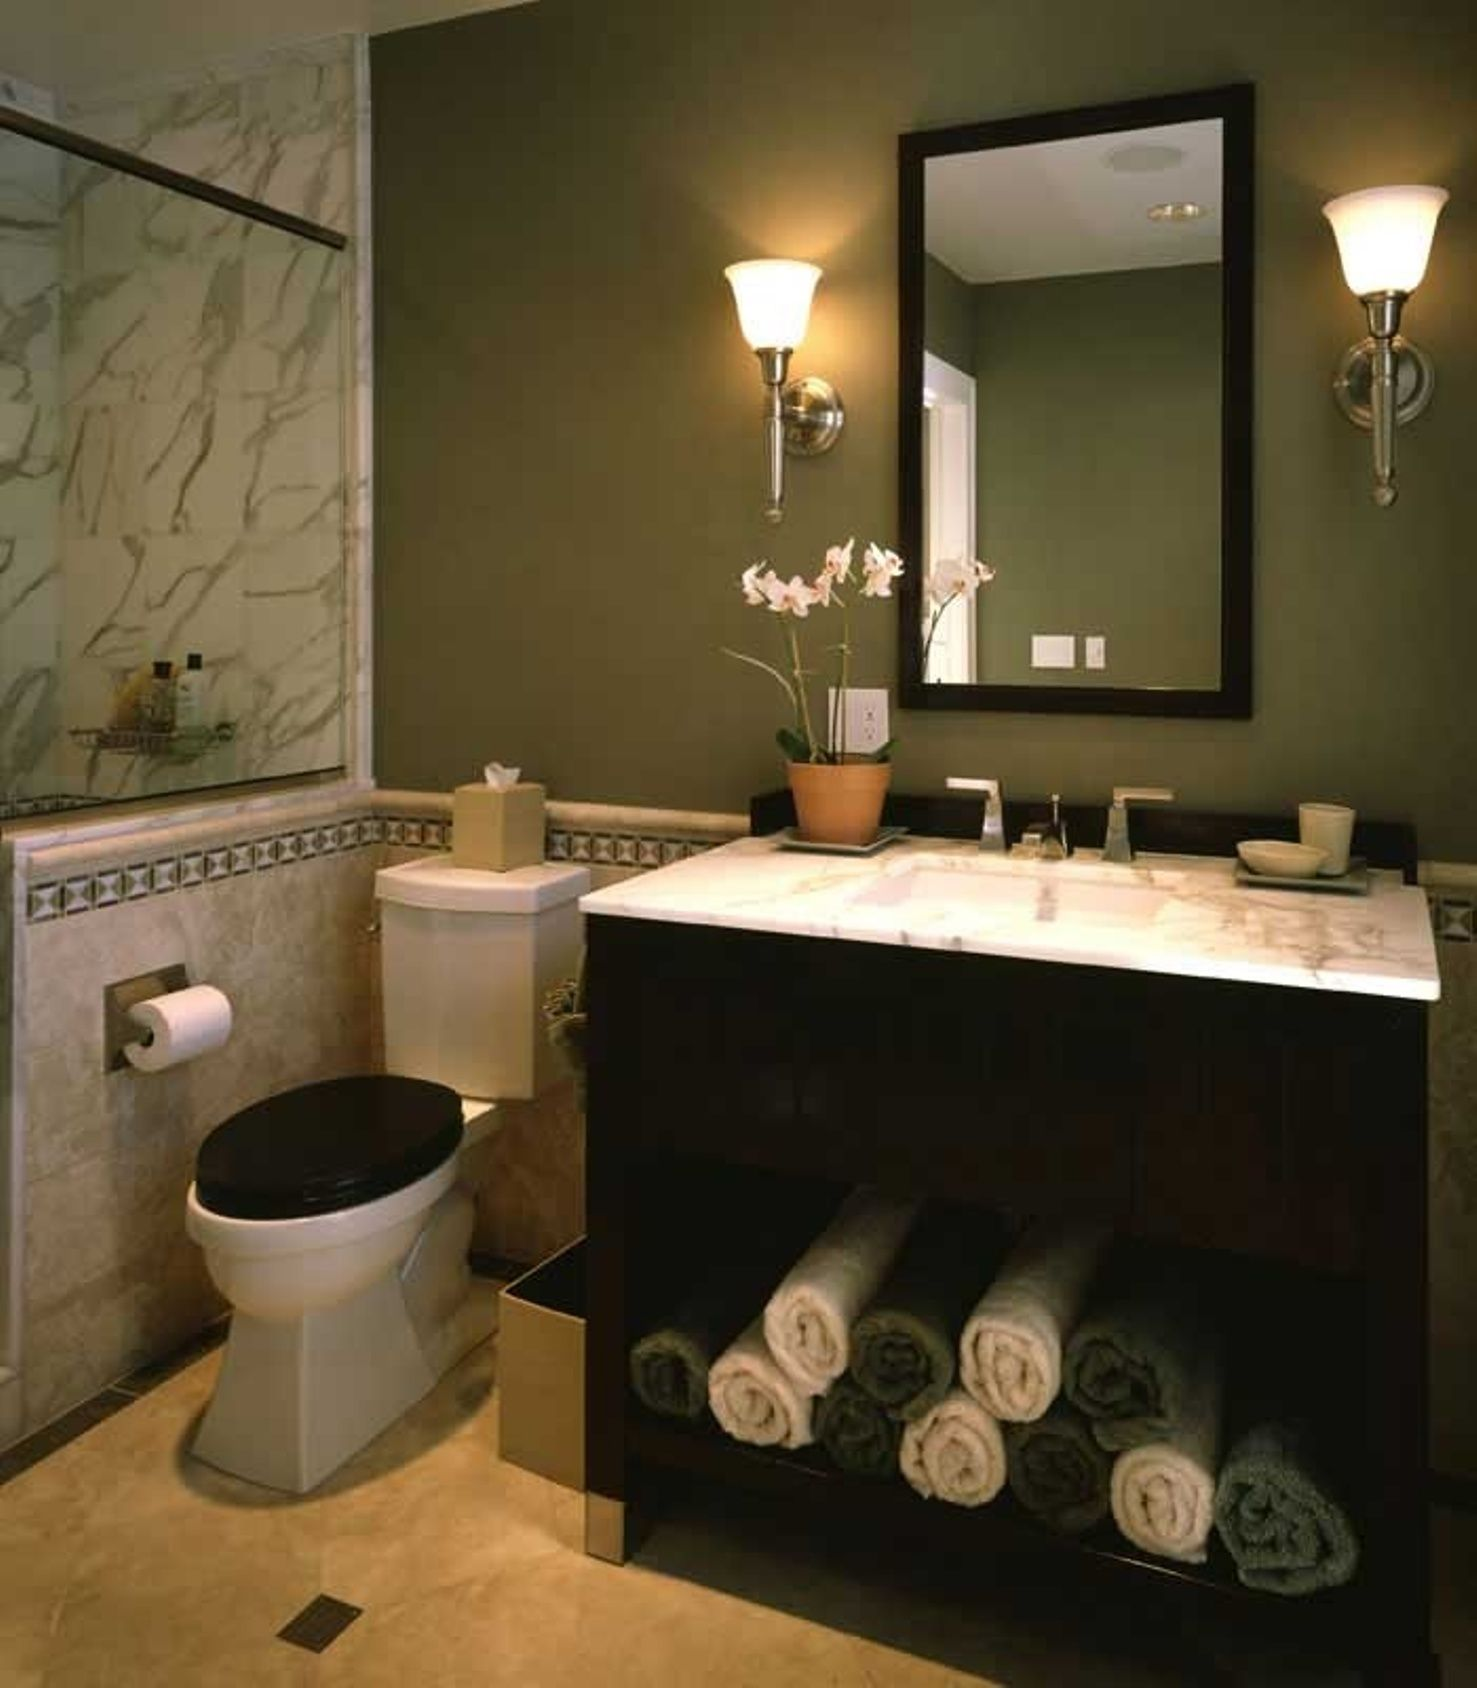 Light Sage Green With Marble Effect Tiles And Brass Fittings Green Bathroom Decor Green Bathroom Blue Bathroom Accessories